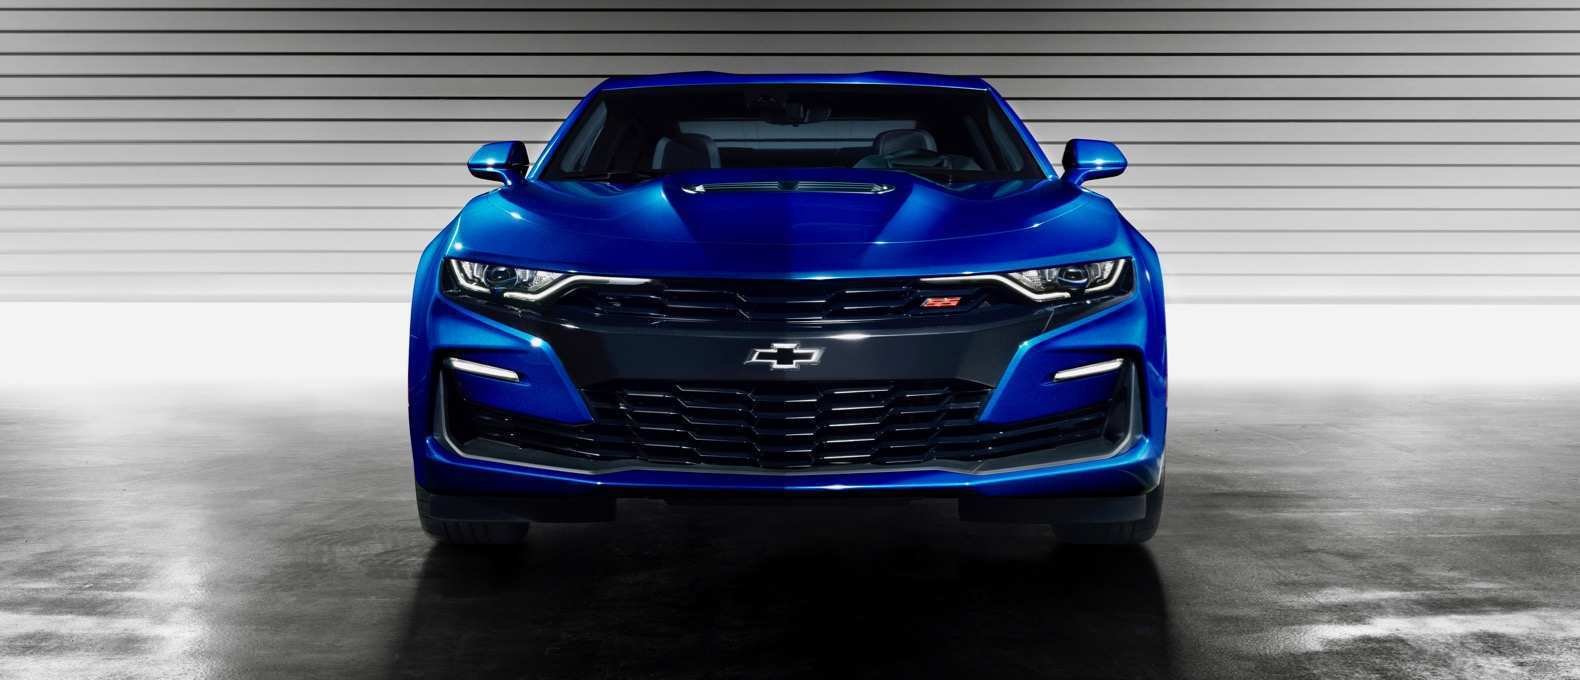 11 Great 2020 The Camaro Ss Exterior for 2020 The Camaro Ss